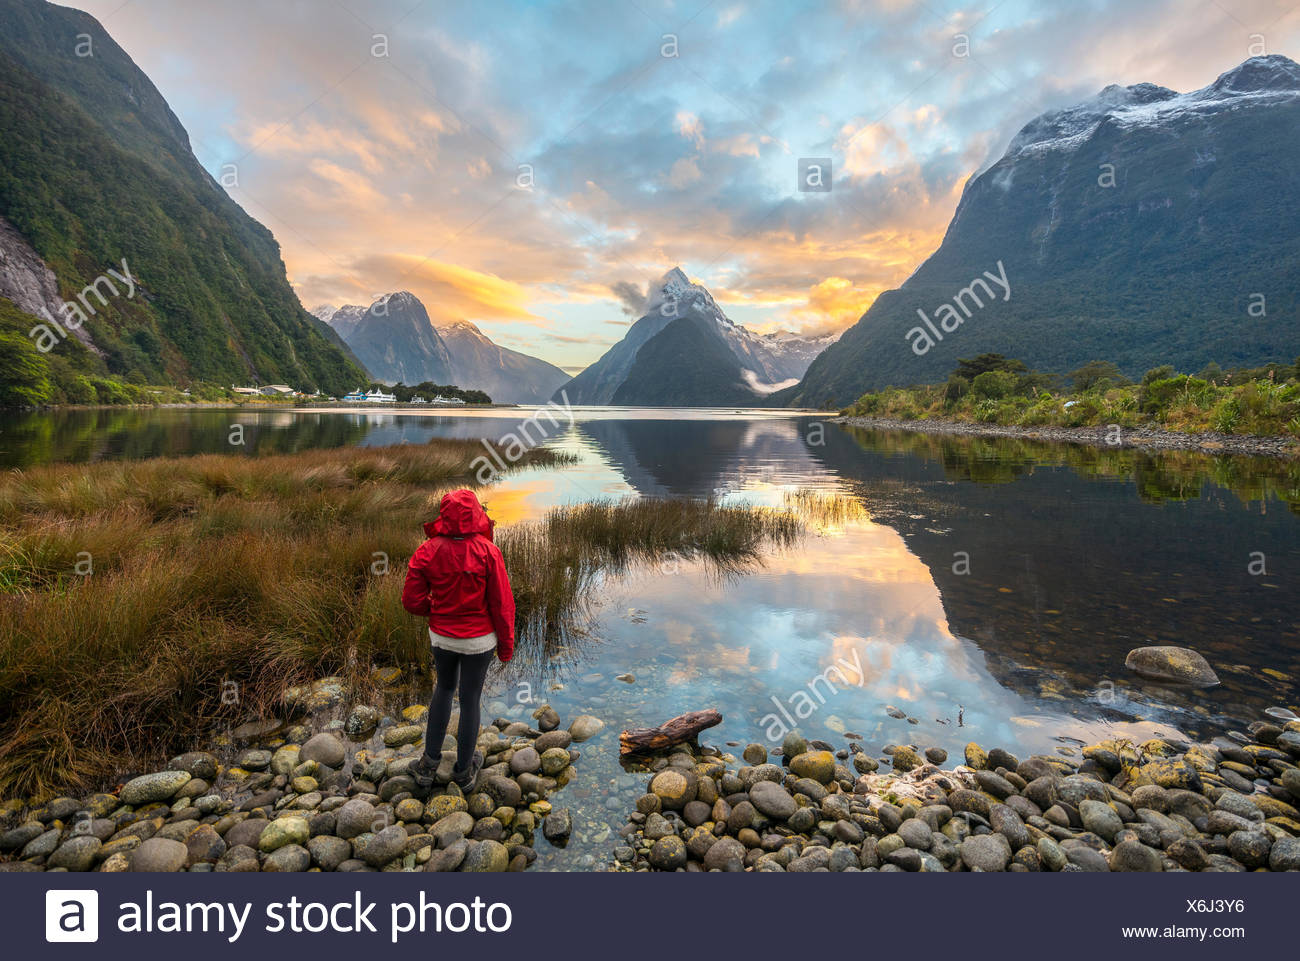 Tourist looking at the landscape, Miter Peak reflected in the water, sunset, Milford Sound, Fiordland National Park, Te Anau Stock Photo